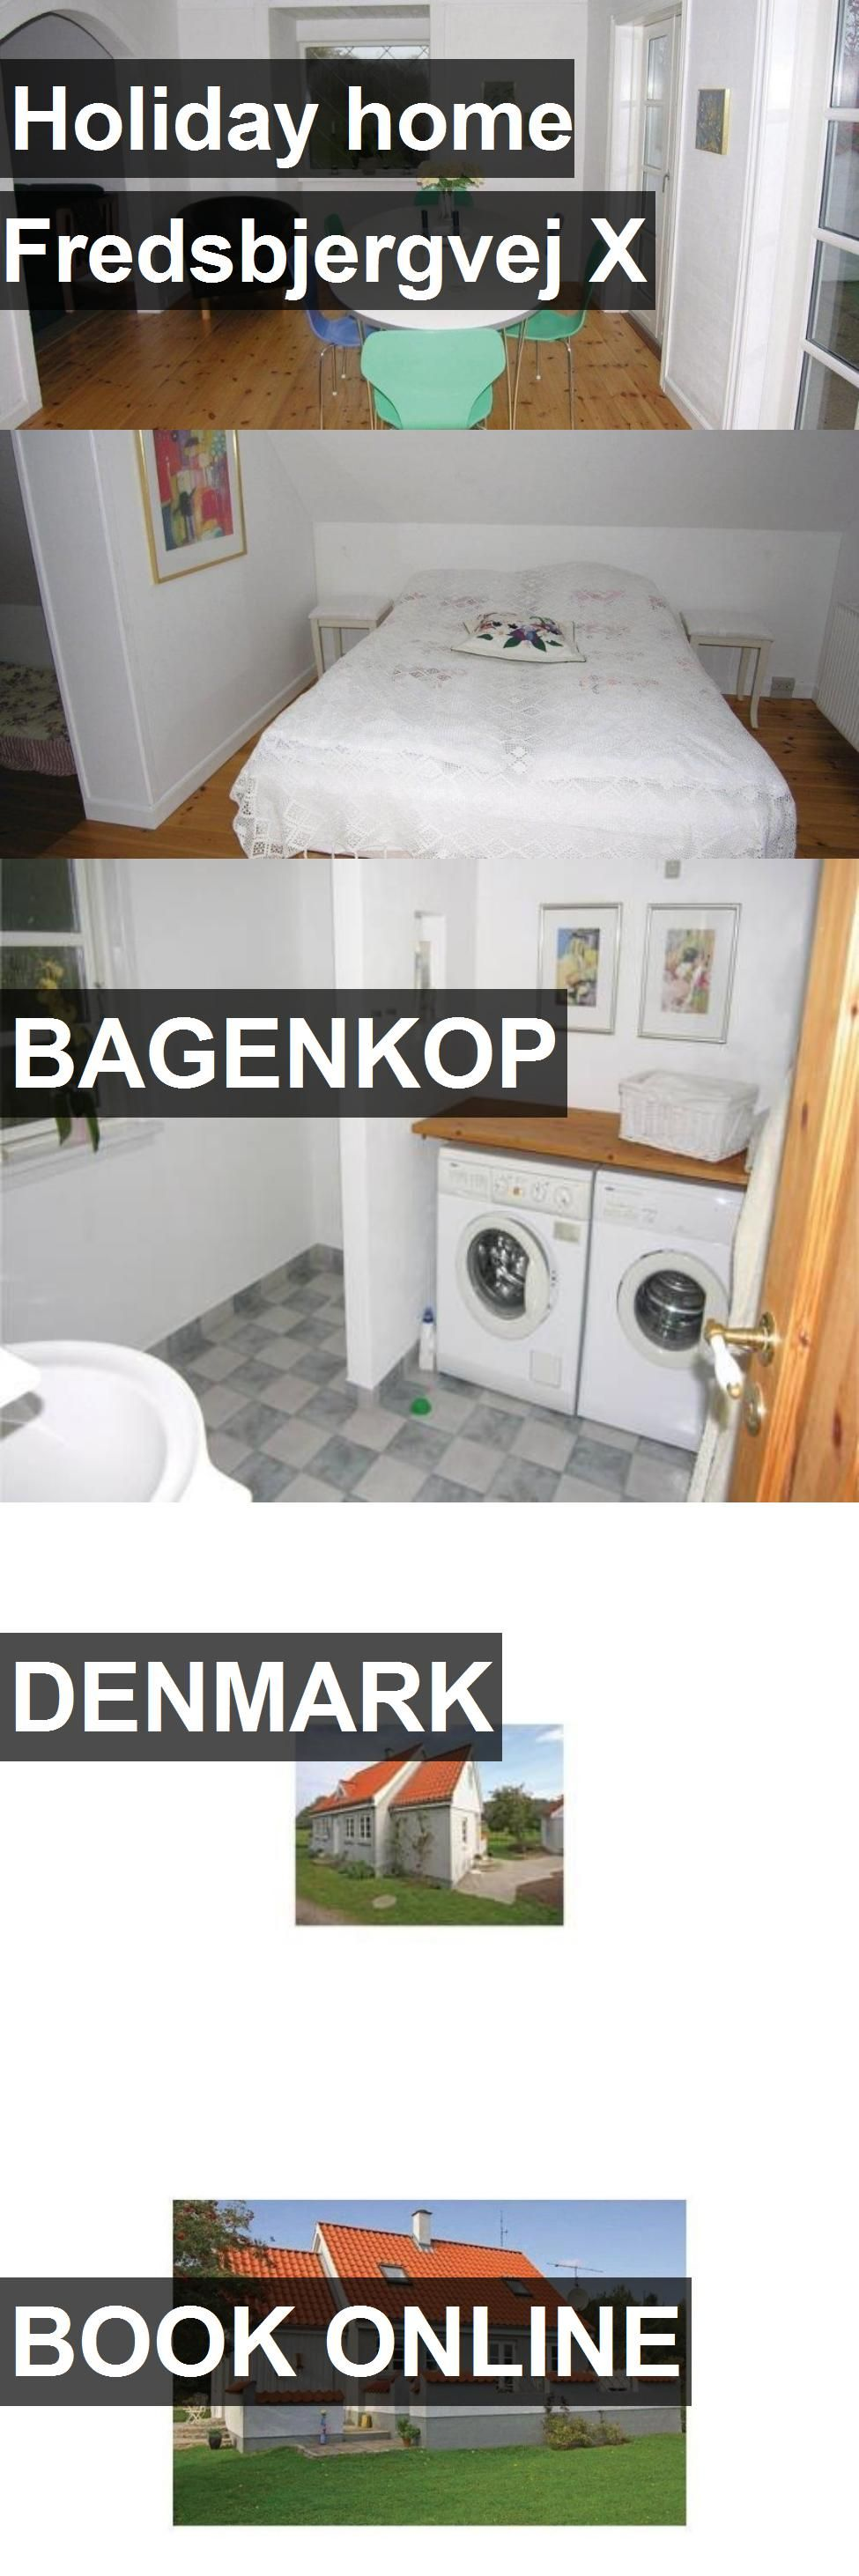 Hotel Holiday home Fredsbjergvej X in Bagenkop, Denmark. For more information, photos, reviews and best prices please follow the link. #Denmark #Bagenkop #hotel #travel #vacation